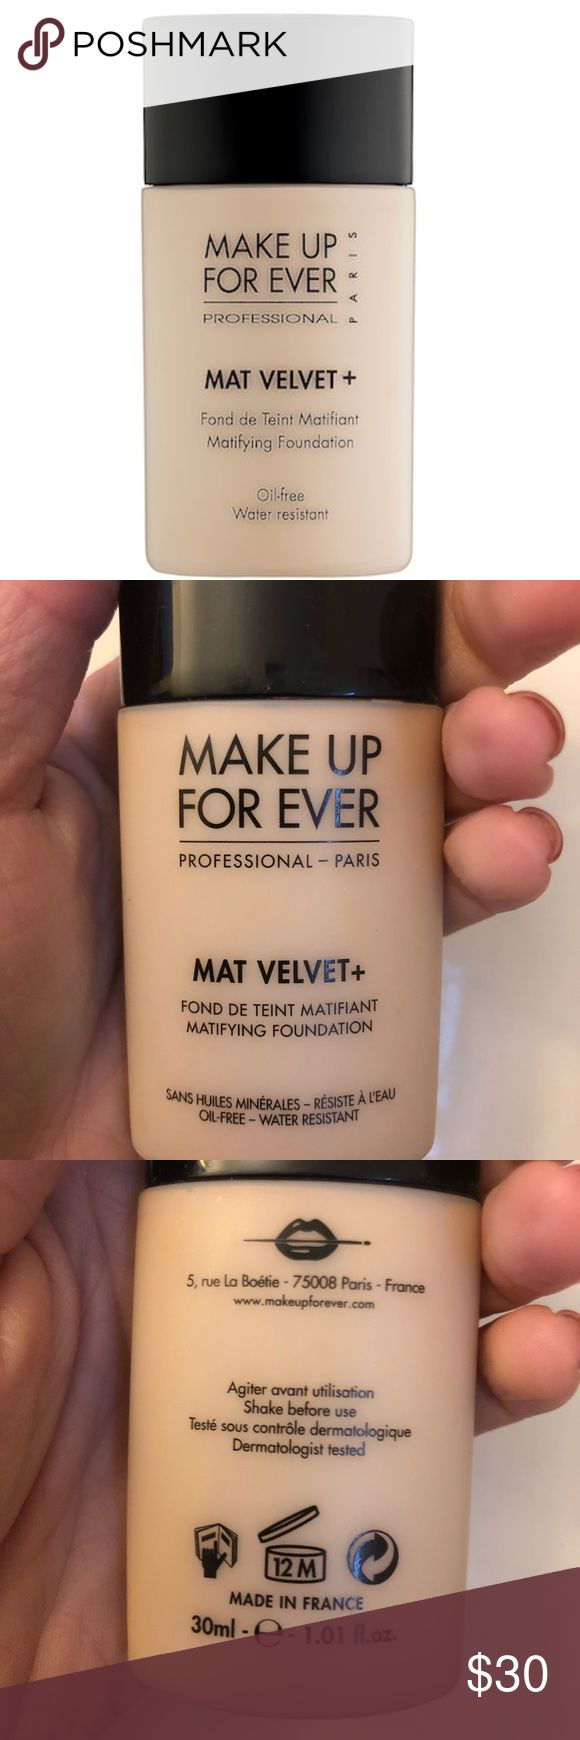 New/ Make Up Forever Mat Velvet Foundation Tried once to test color and shade was not right.   Makeup Forever Mat Velvet Mattifying Foundation  Shade #35 Vanilla : for medium skin tones with yellow/ beige undertones   Description: Velvety smooth & lightweight fluid makeup Provides a natural, matte look with non-oily powdery finish Cover blemishes, imperfections & evens out skin tone Leaves you a flawless complexion throughout the day Waterproof & long lasting Non comedogenic formula…